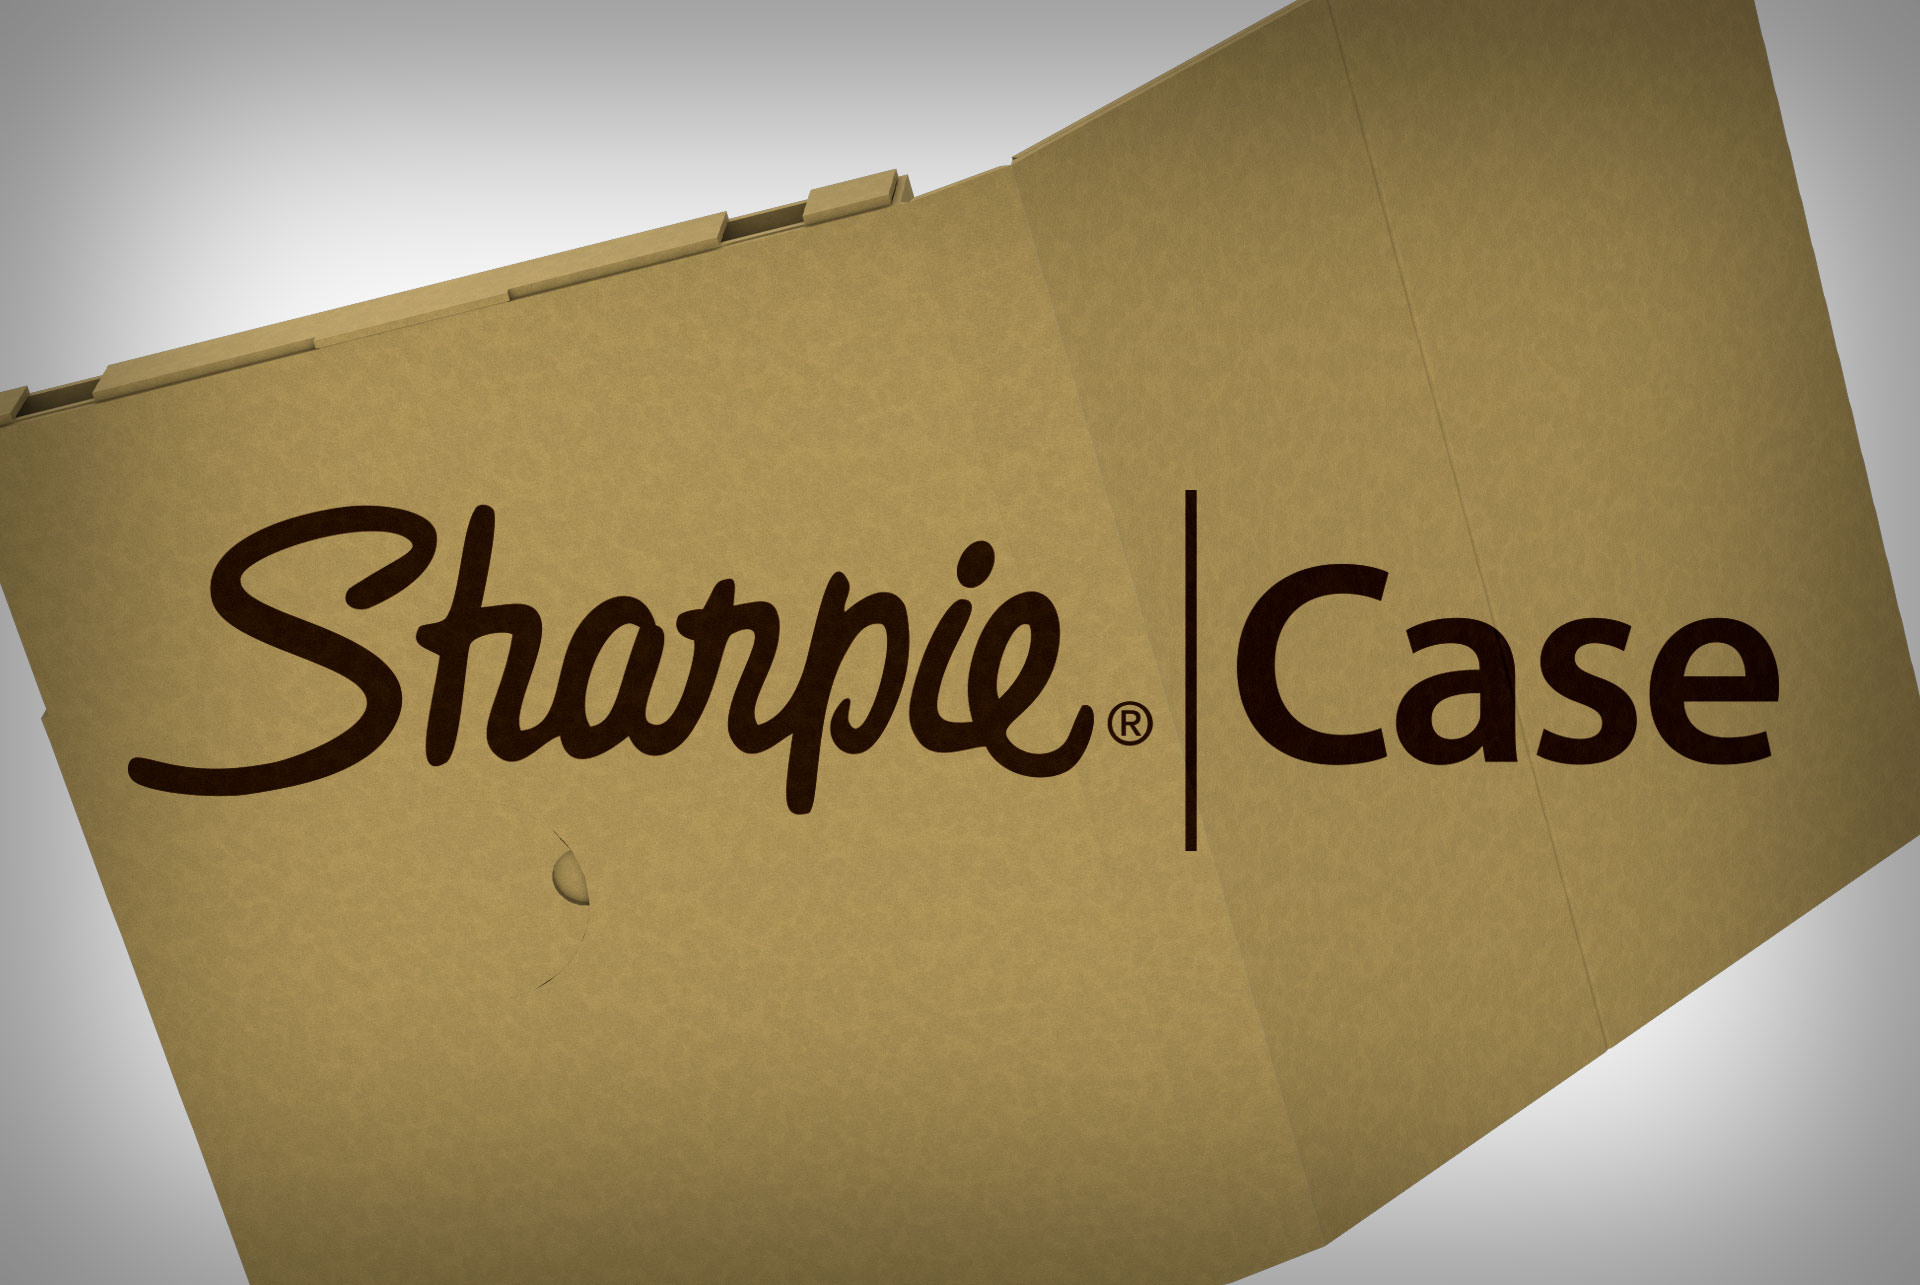 Sharpie® Case